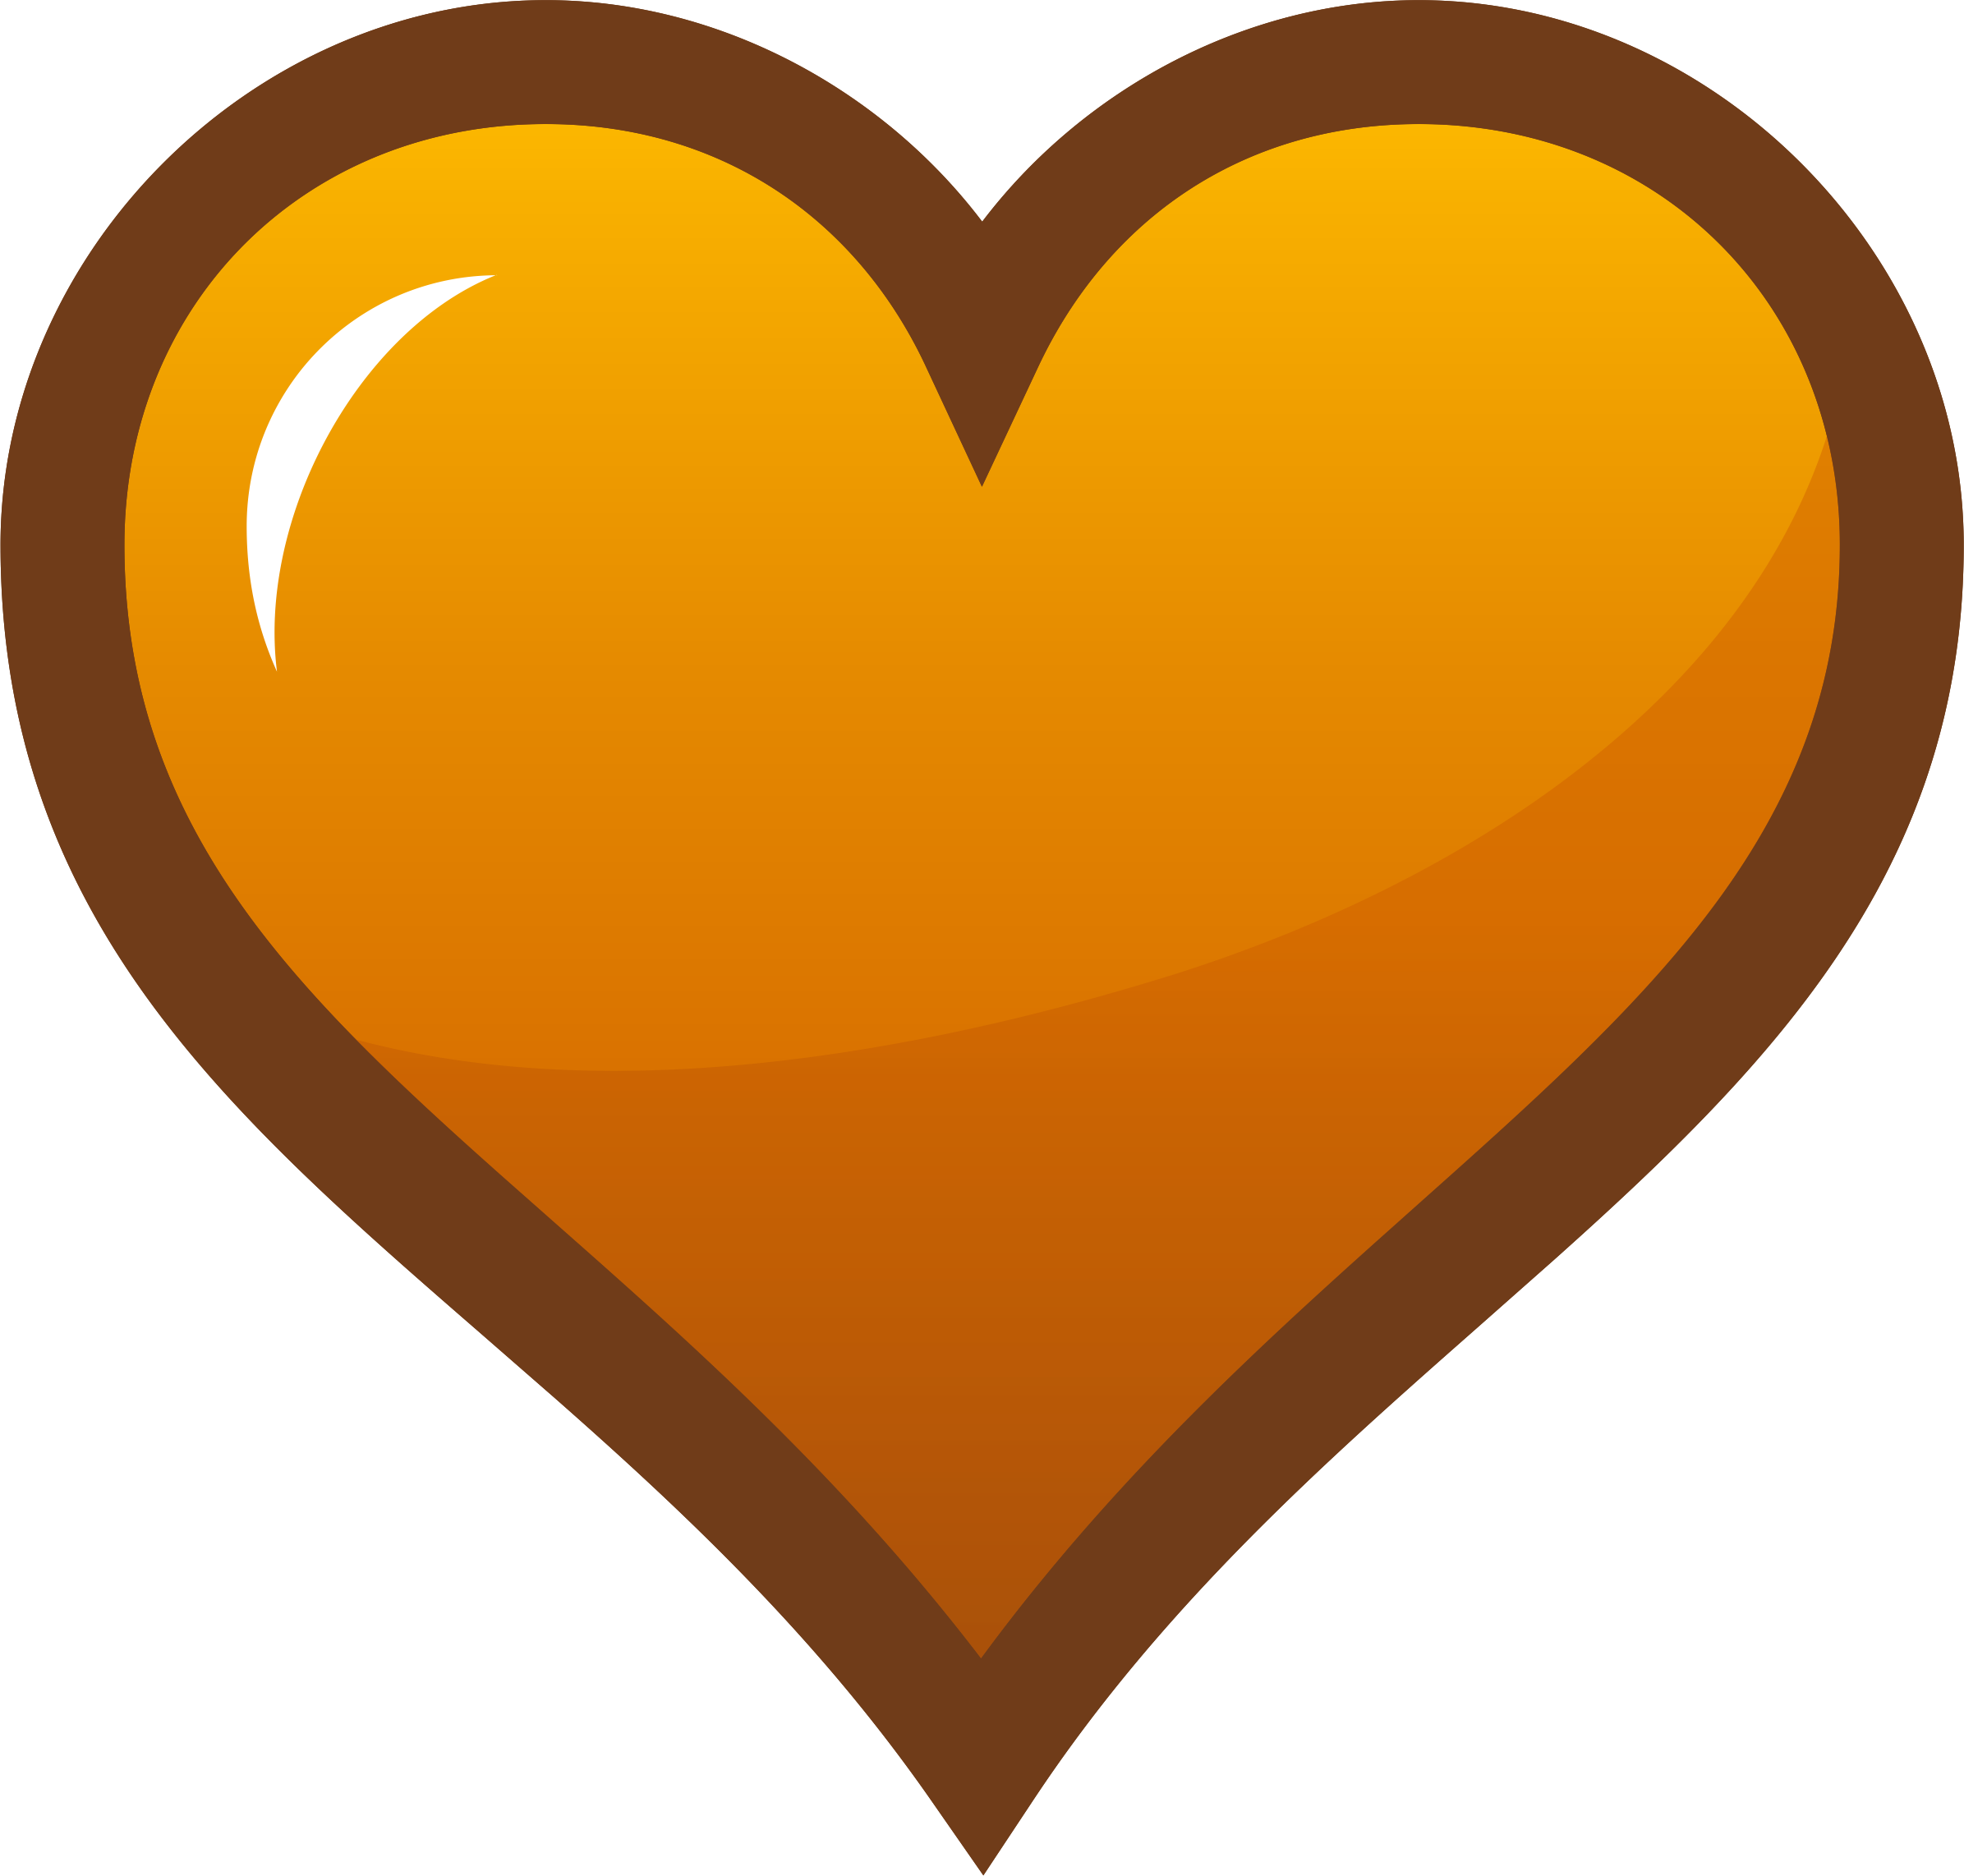 Orange Heart Icon by pianoBrad